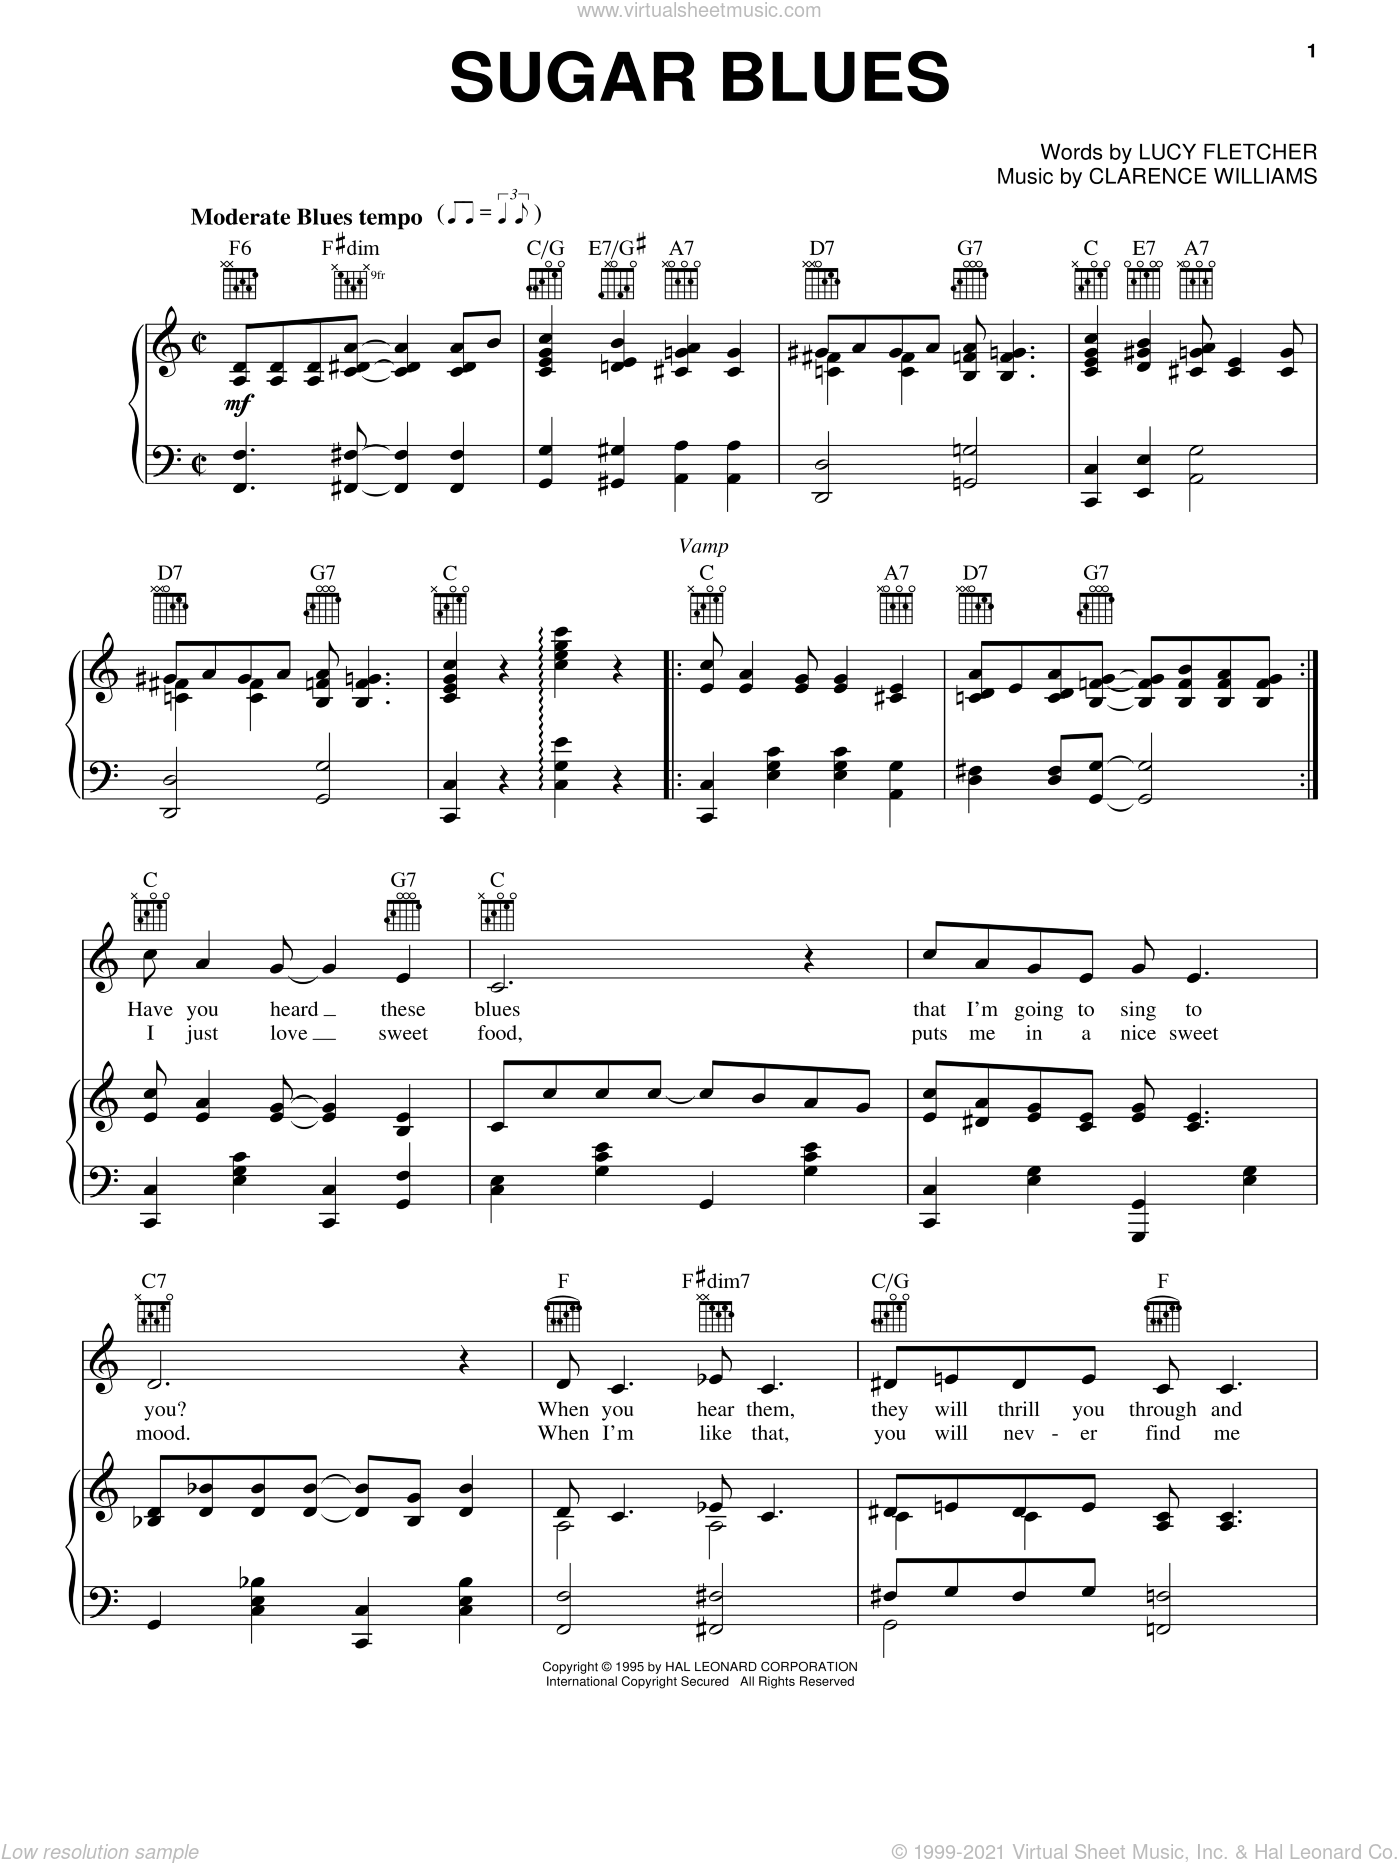 Sugar Blues sheet music for voice, piano or guitar by Lucy Fletcher